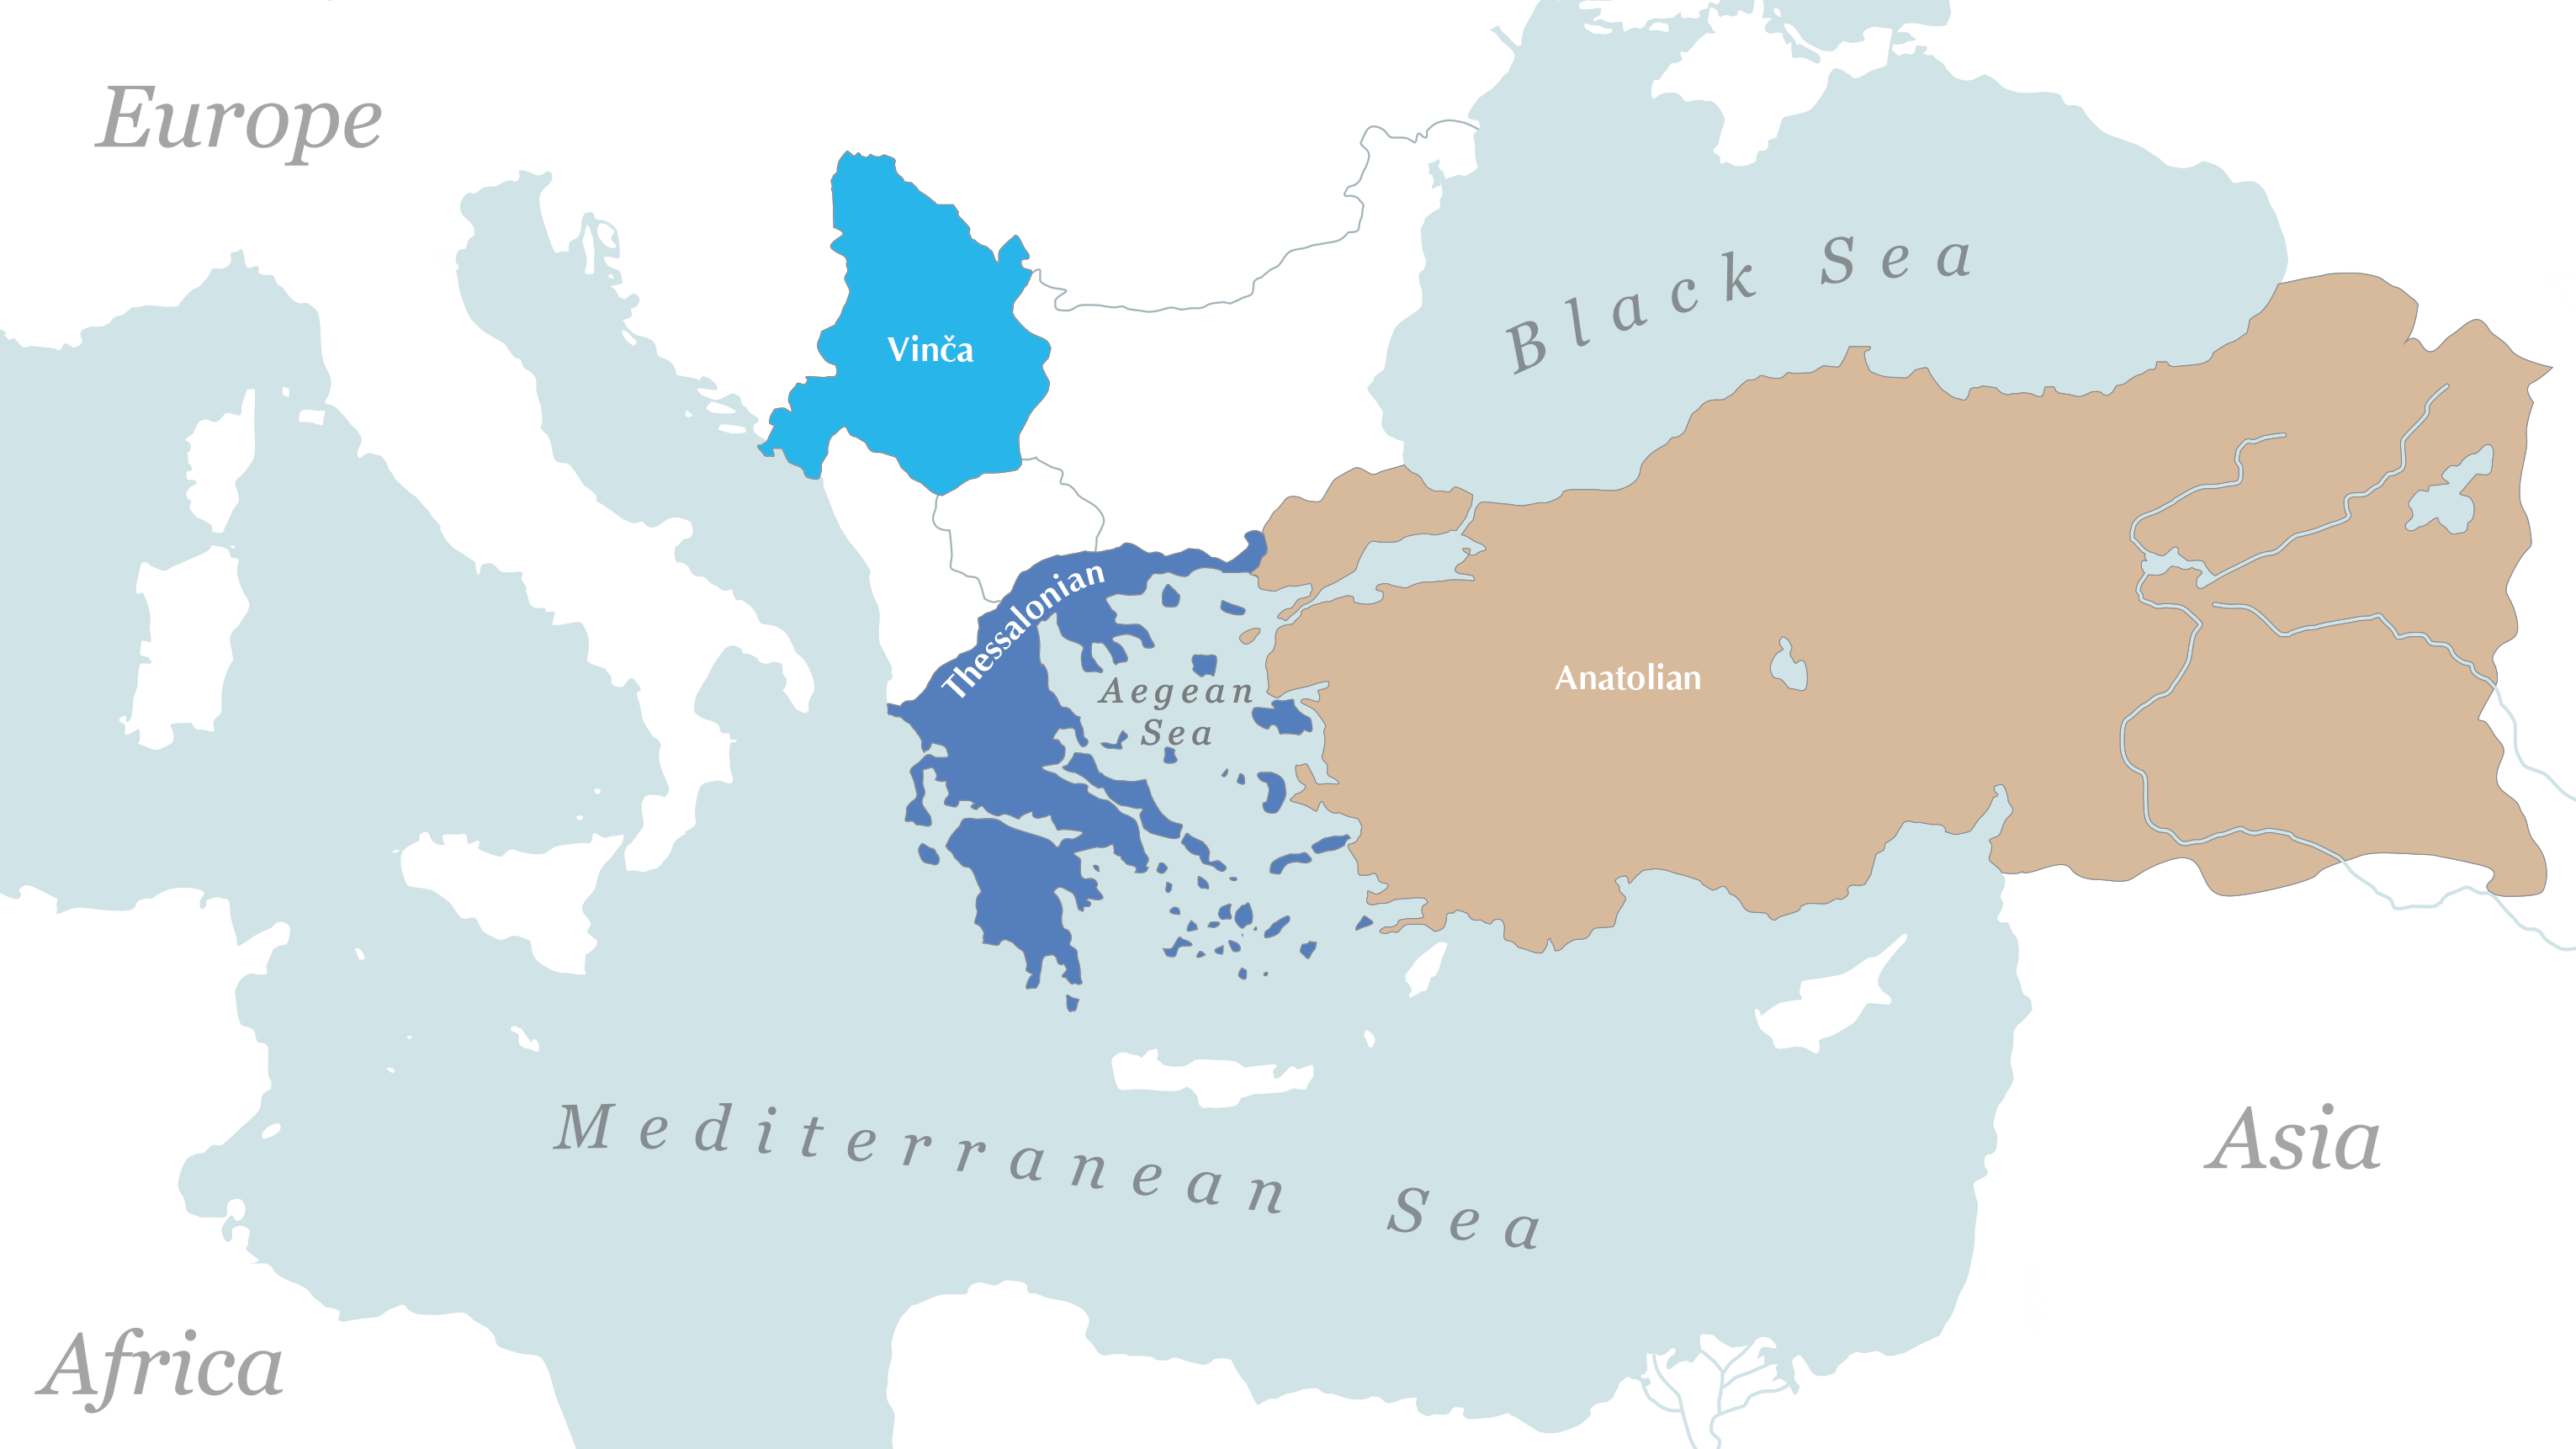 map of the mediterranean region showing vinca in serbia, thessalonia in greece, and anatolia in turkey